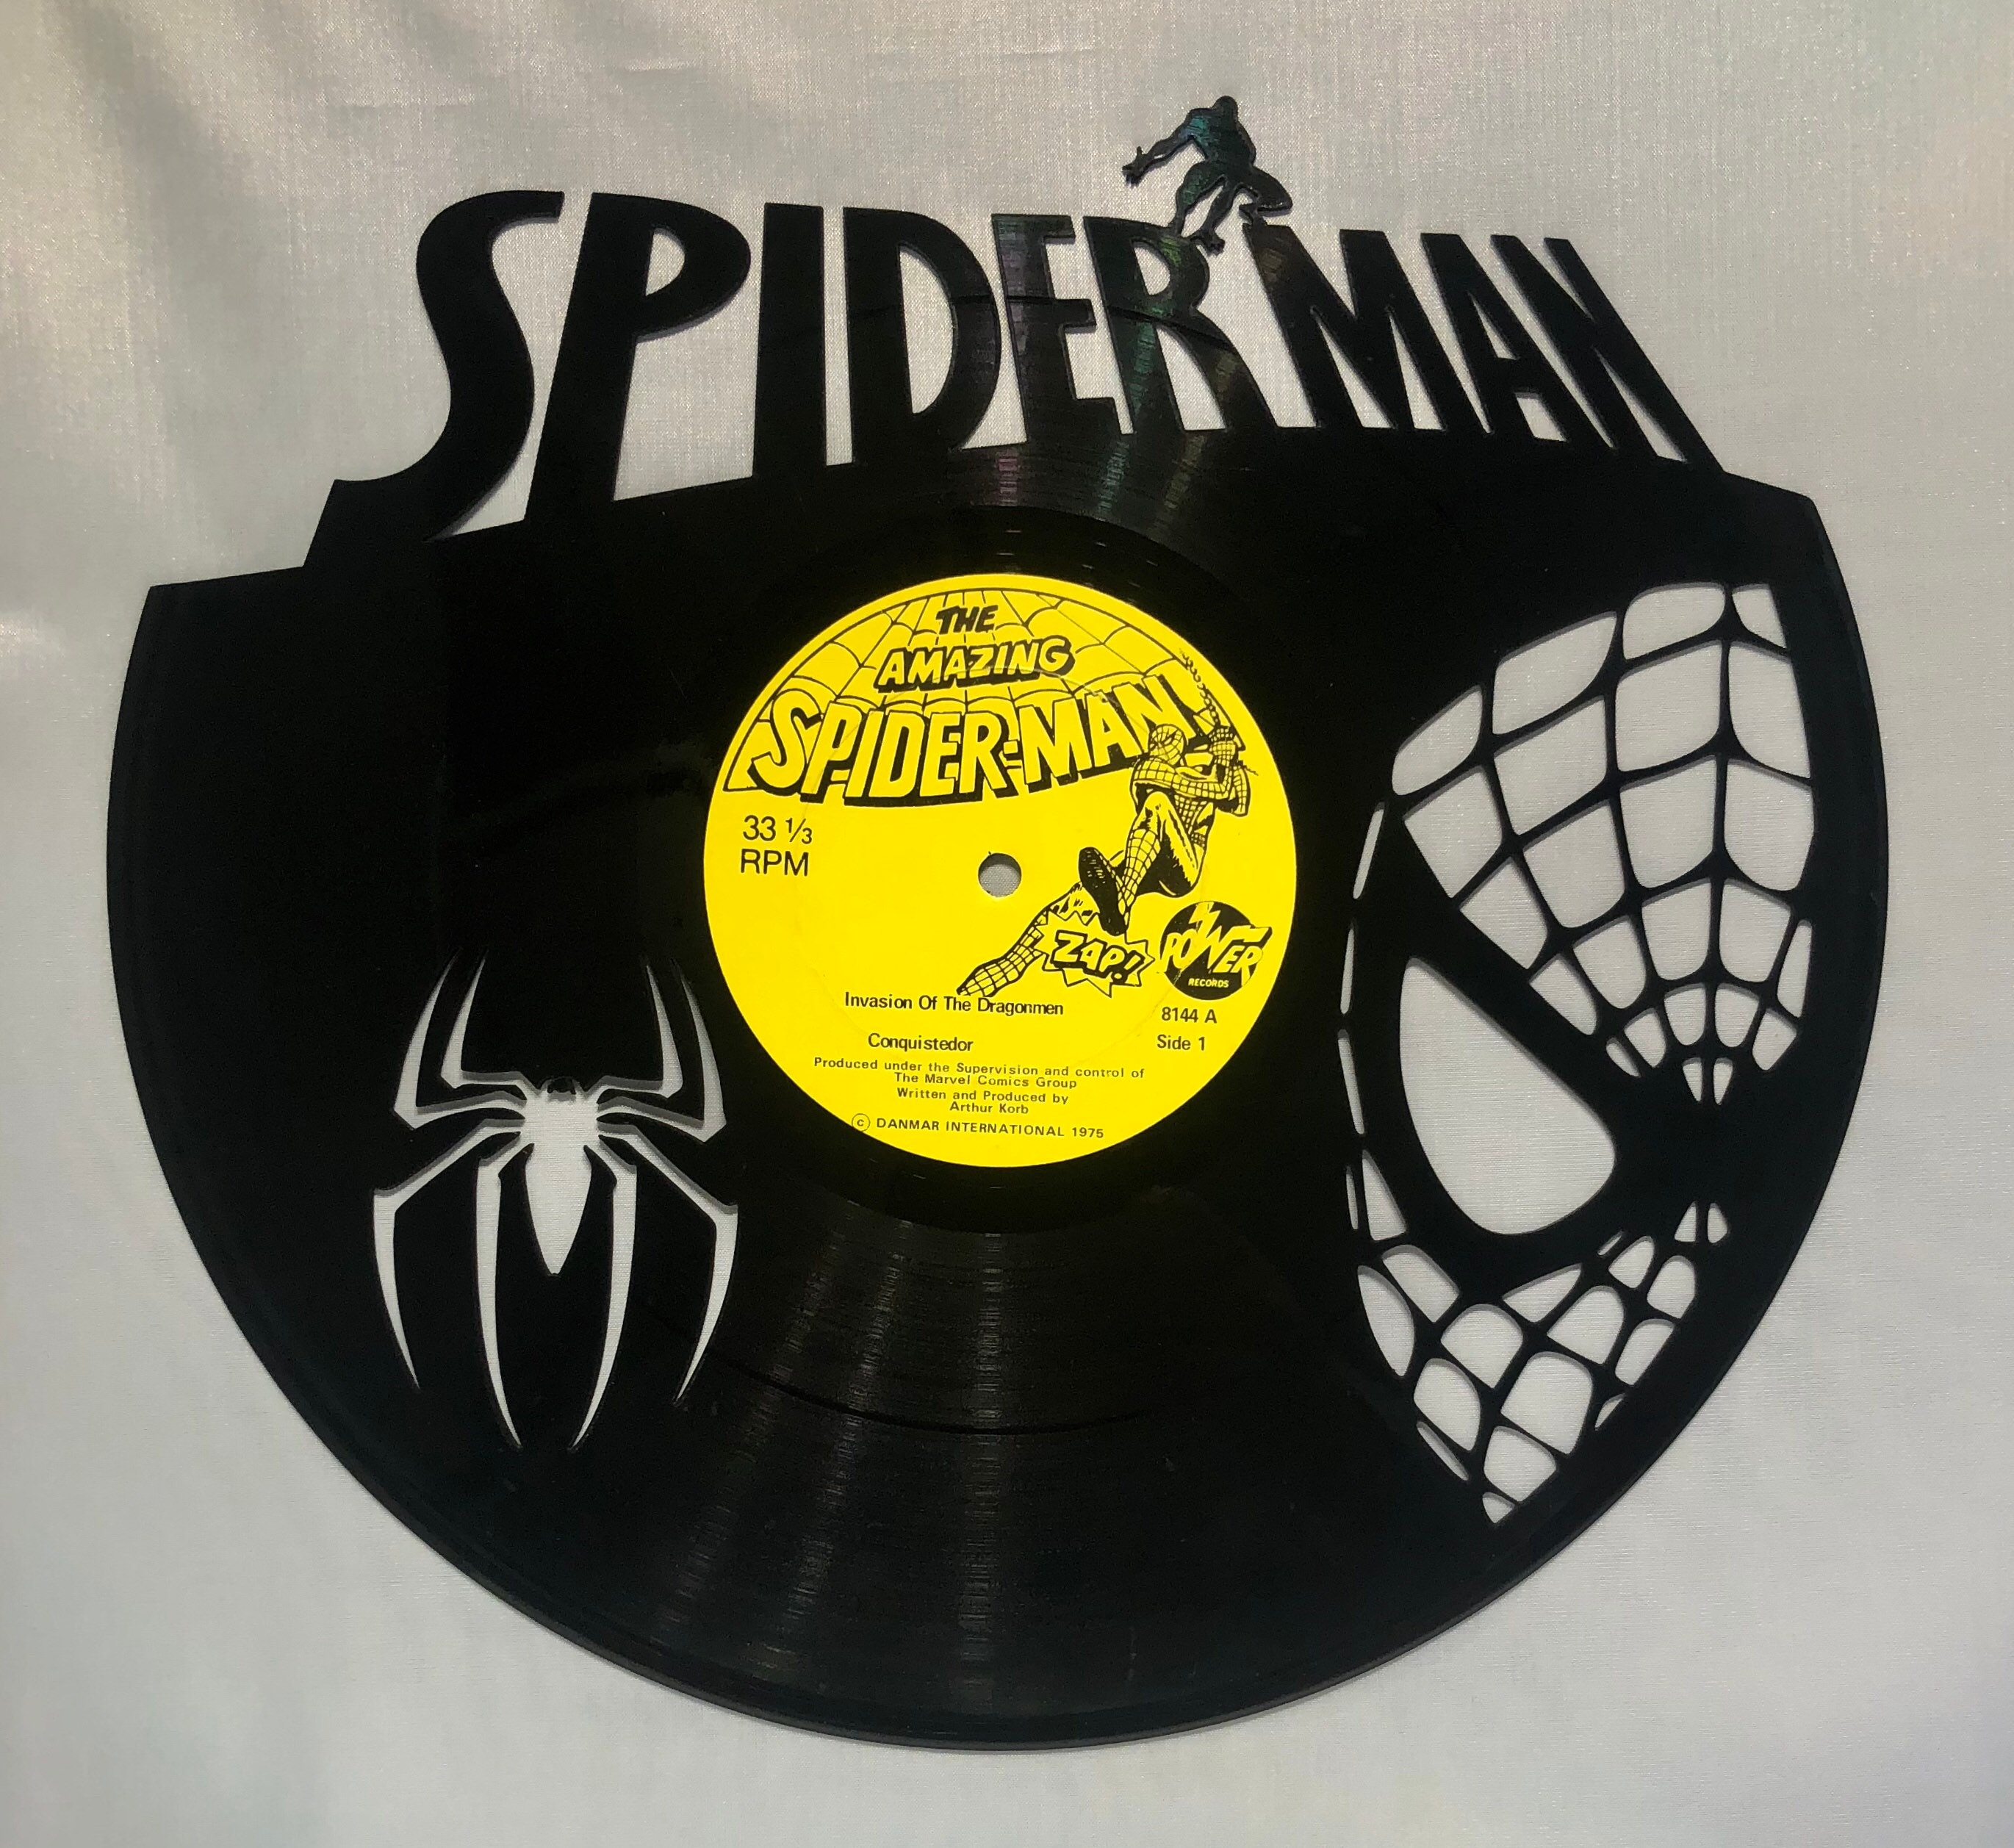 Recycled Vinyl Record Spiderman Wall Art